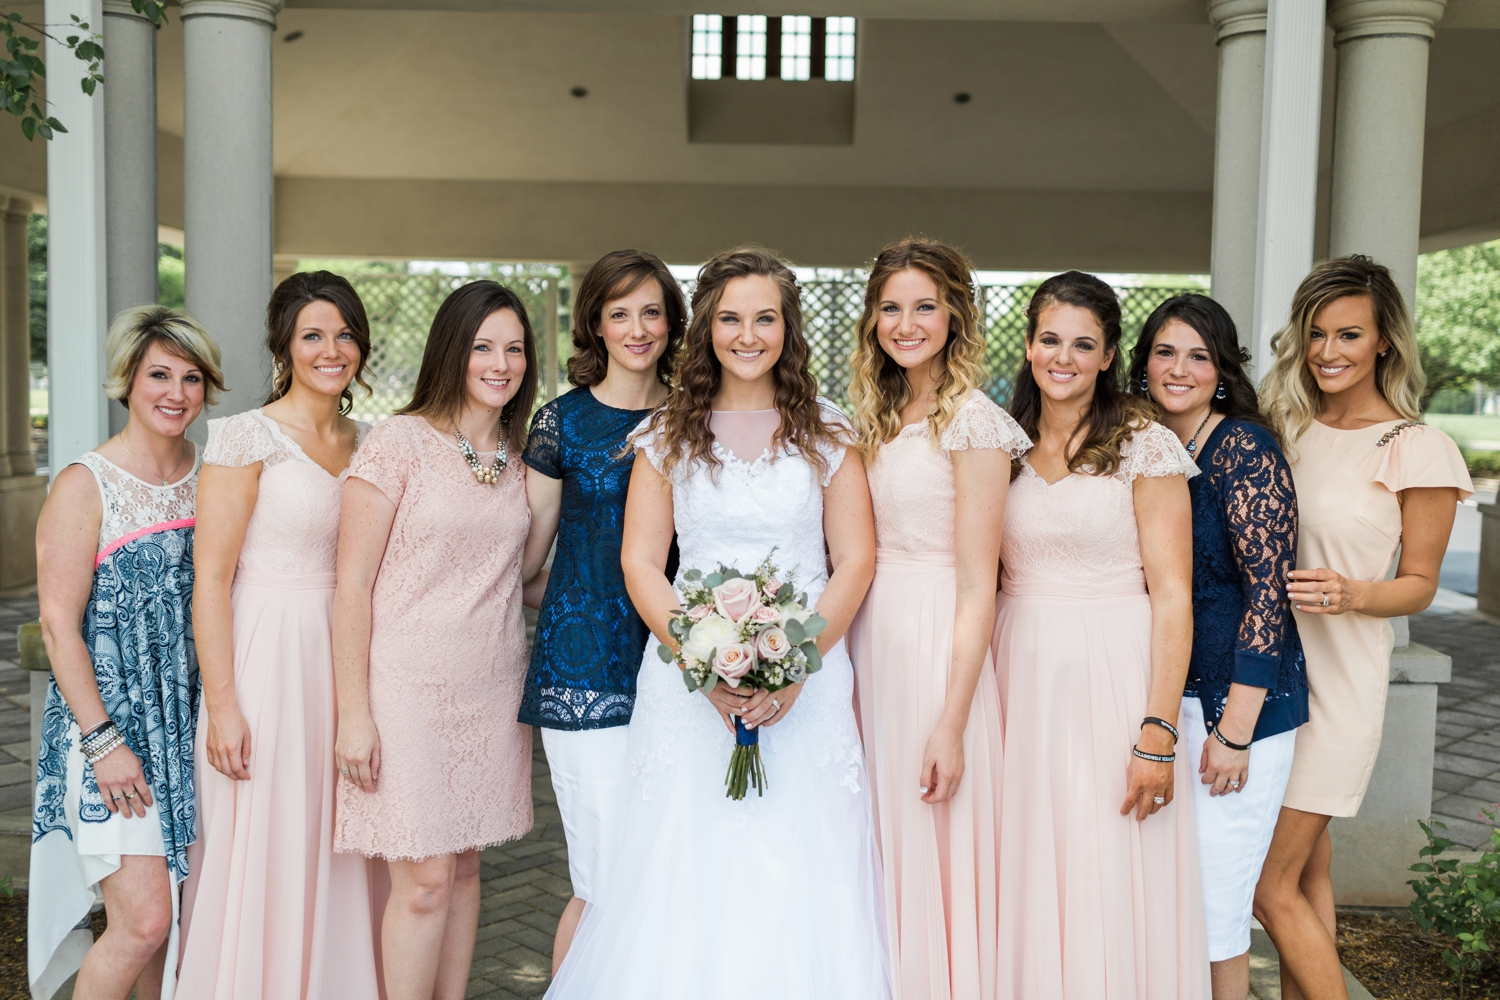 Community_Life_Center_Indianapolis_Indiana_Wedding_Photographer_Chloe_Luka_Photography_6939.jpg